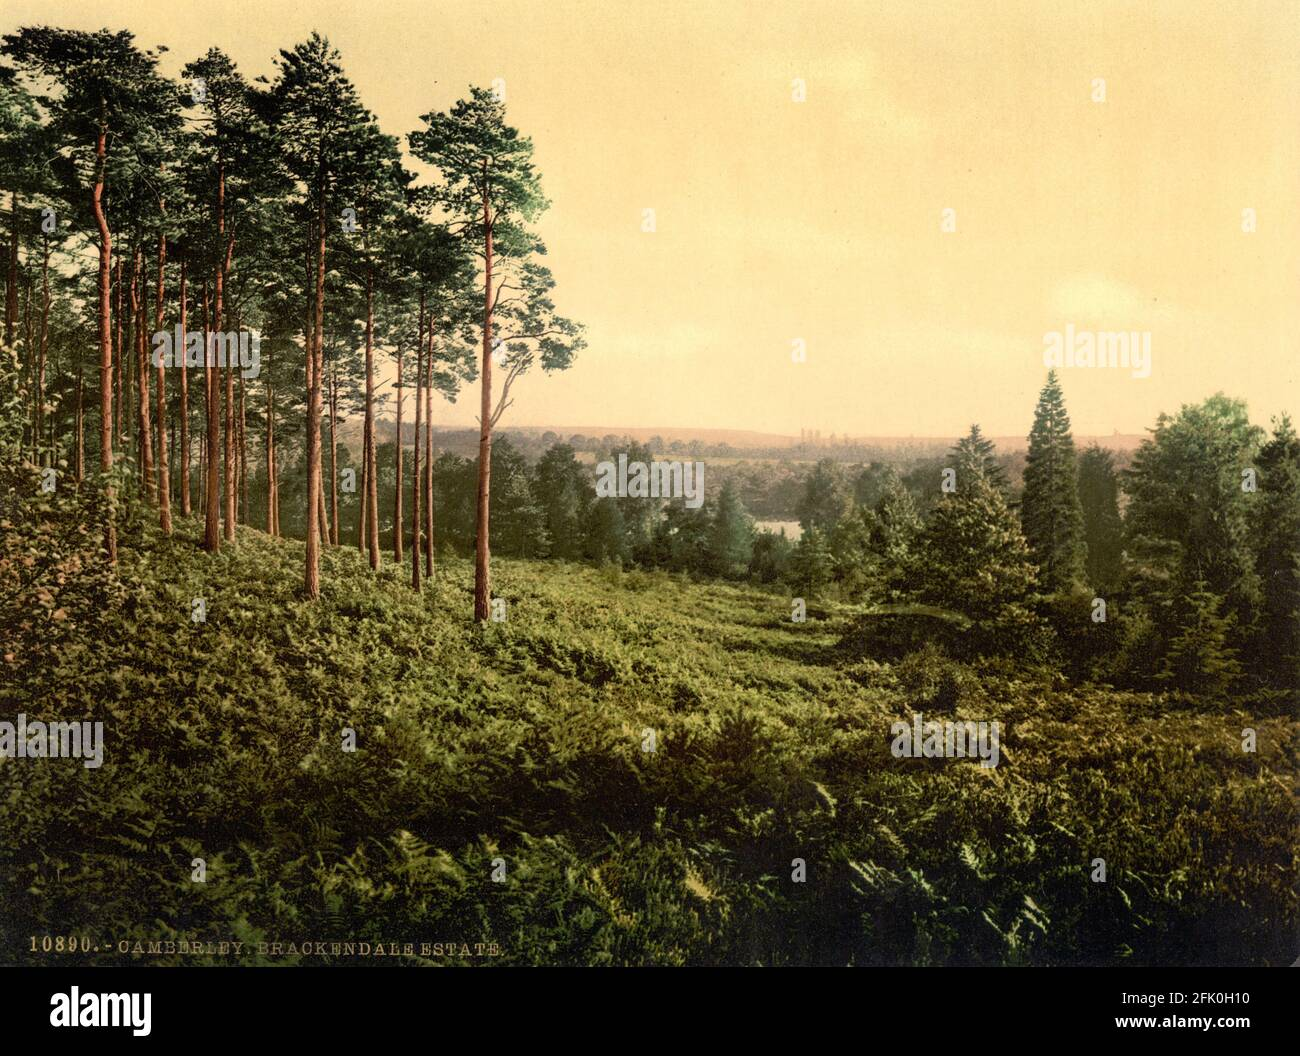 Domaine Brackendale, Camberley, Surrey vers 1890-1900 Banque D'Images